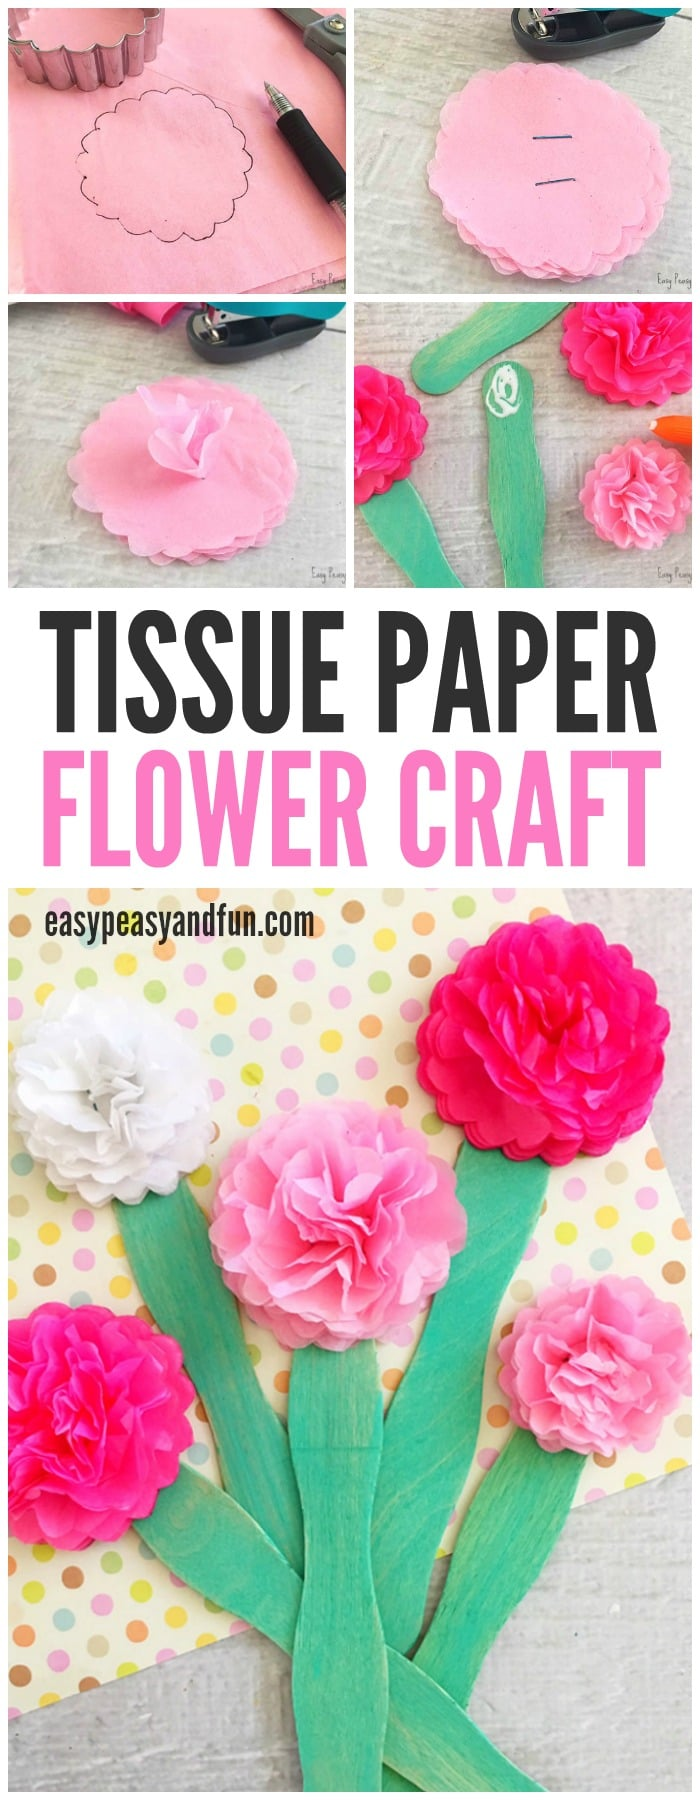 Tissue paper flower craft easy peasy and fun colorful tissue paper flower craft for kids to make mightylinksfo